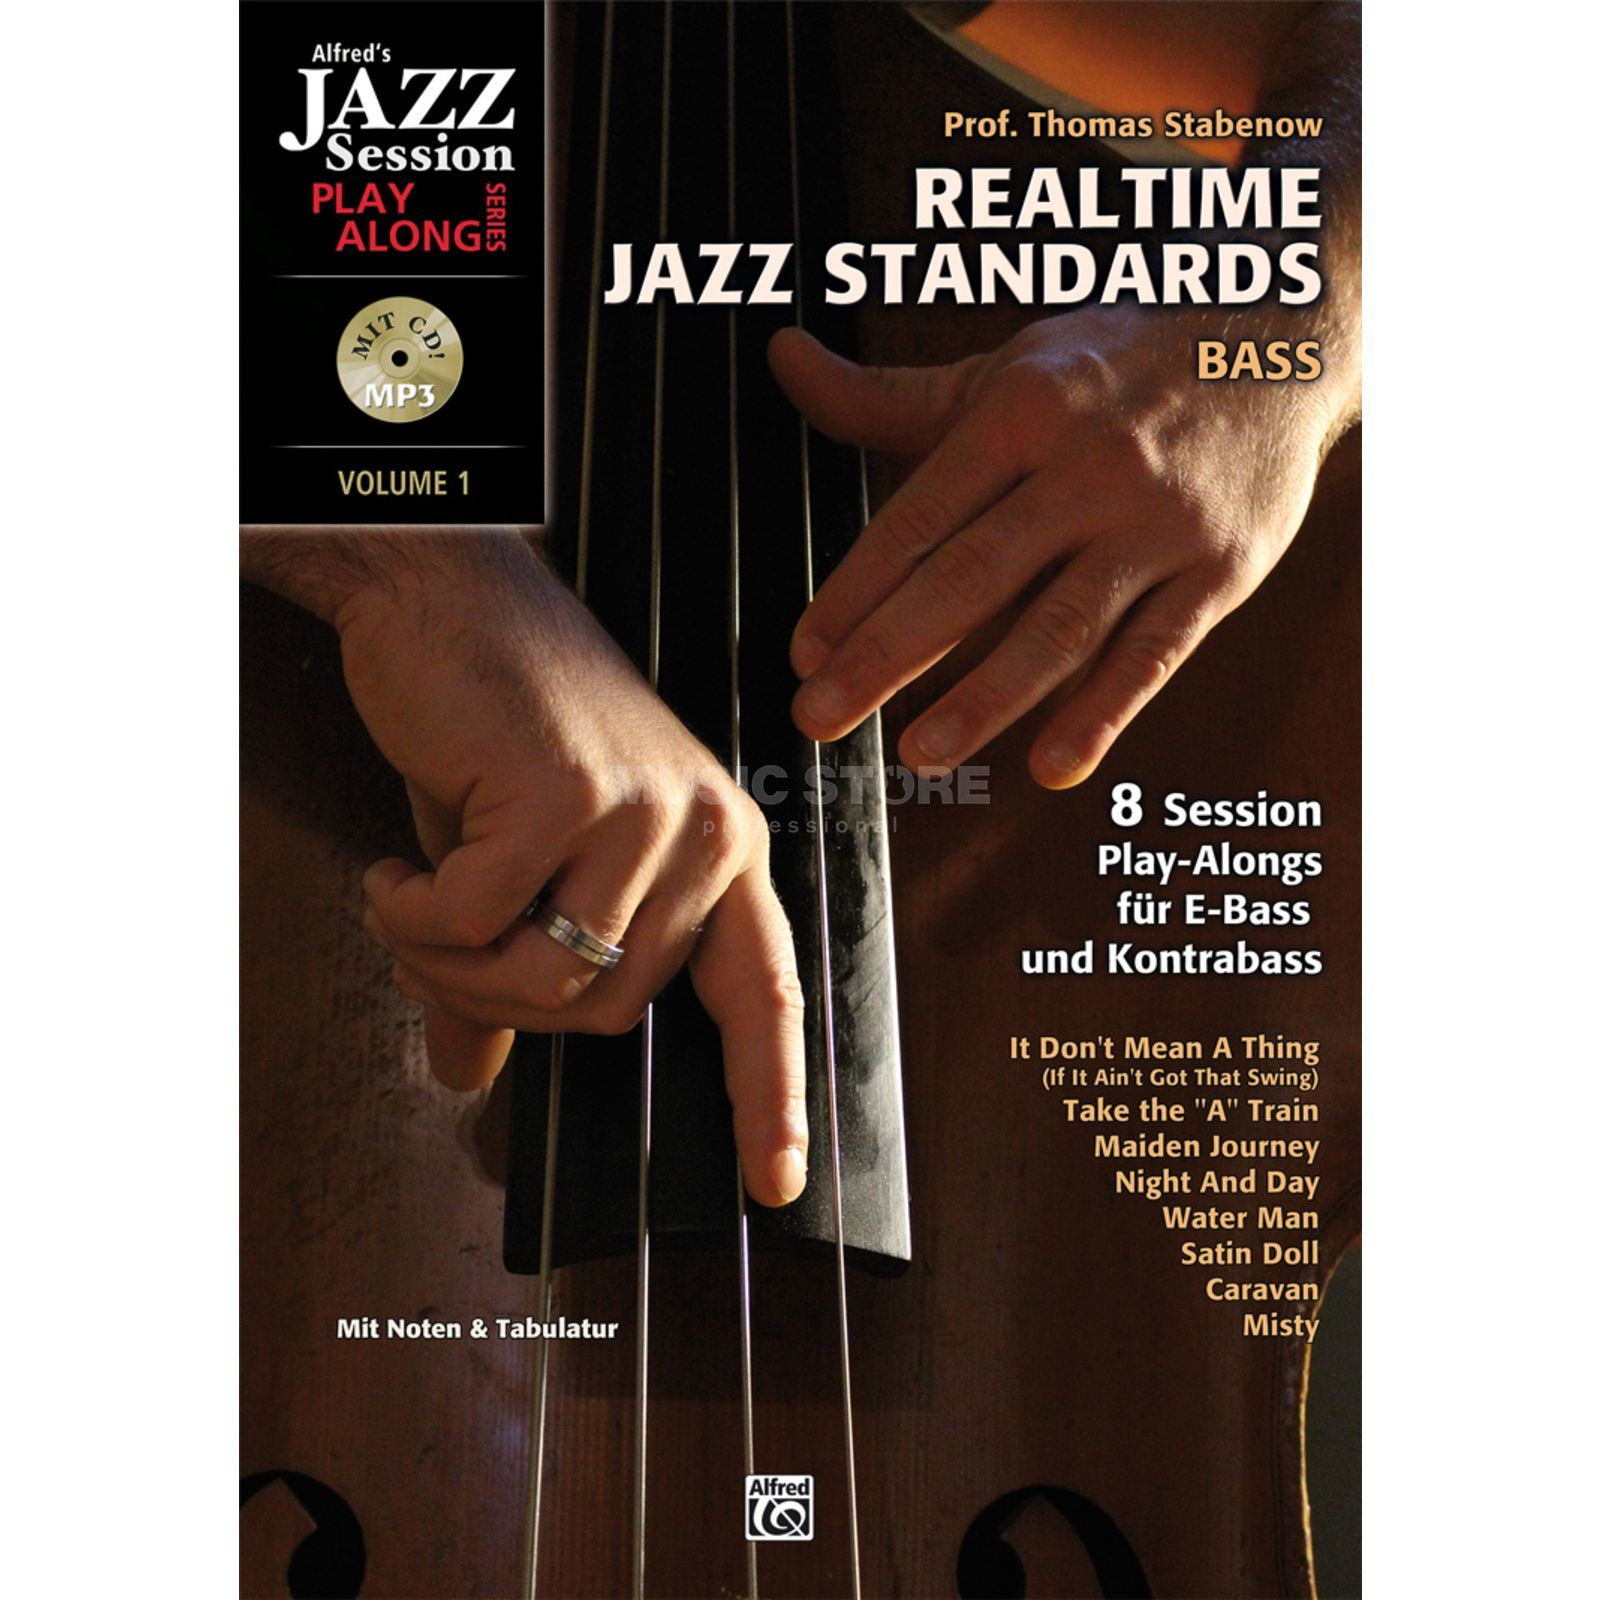 Alfred Music Realtime Jazz Standards - Bass Produktbild